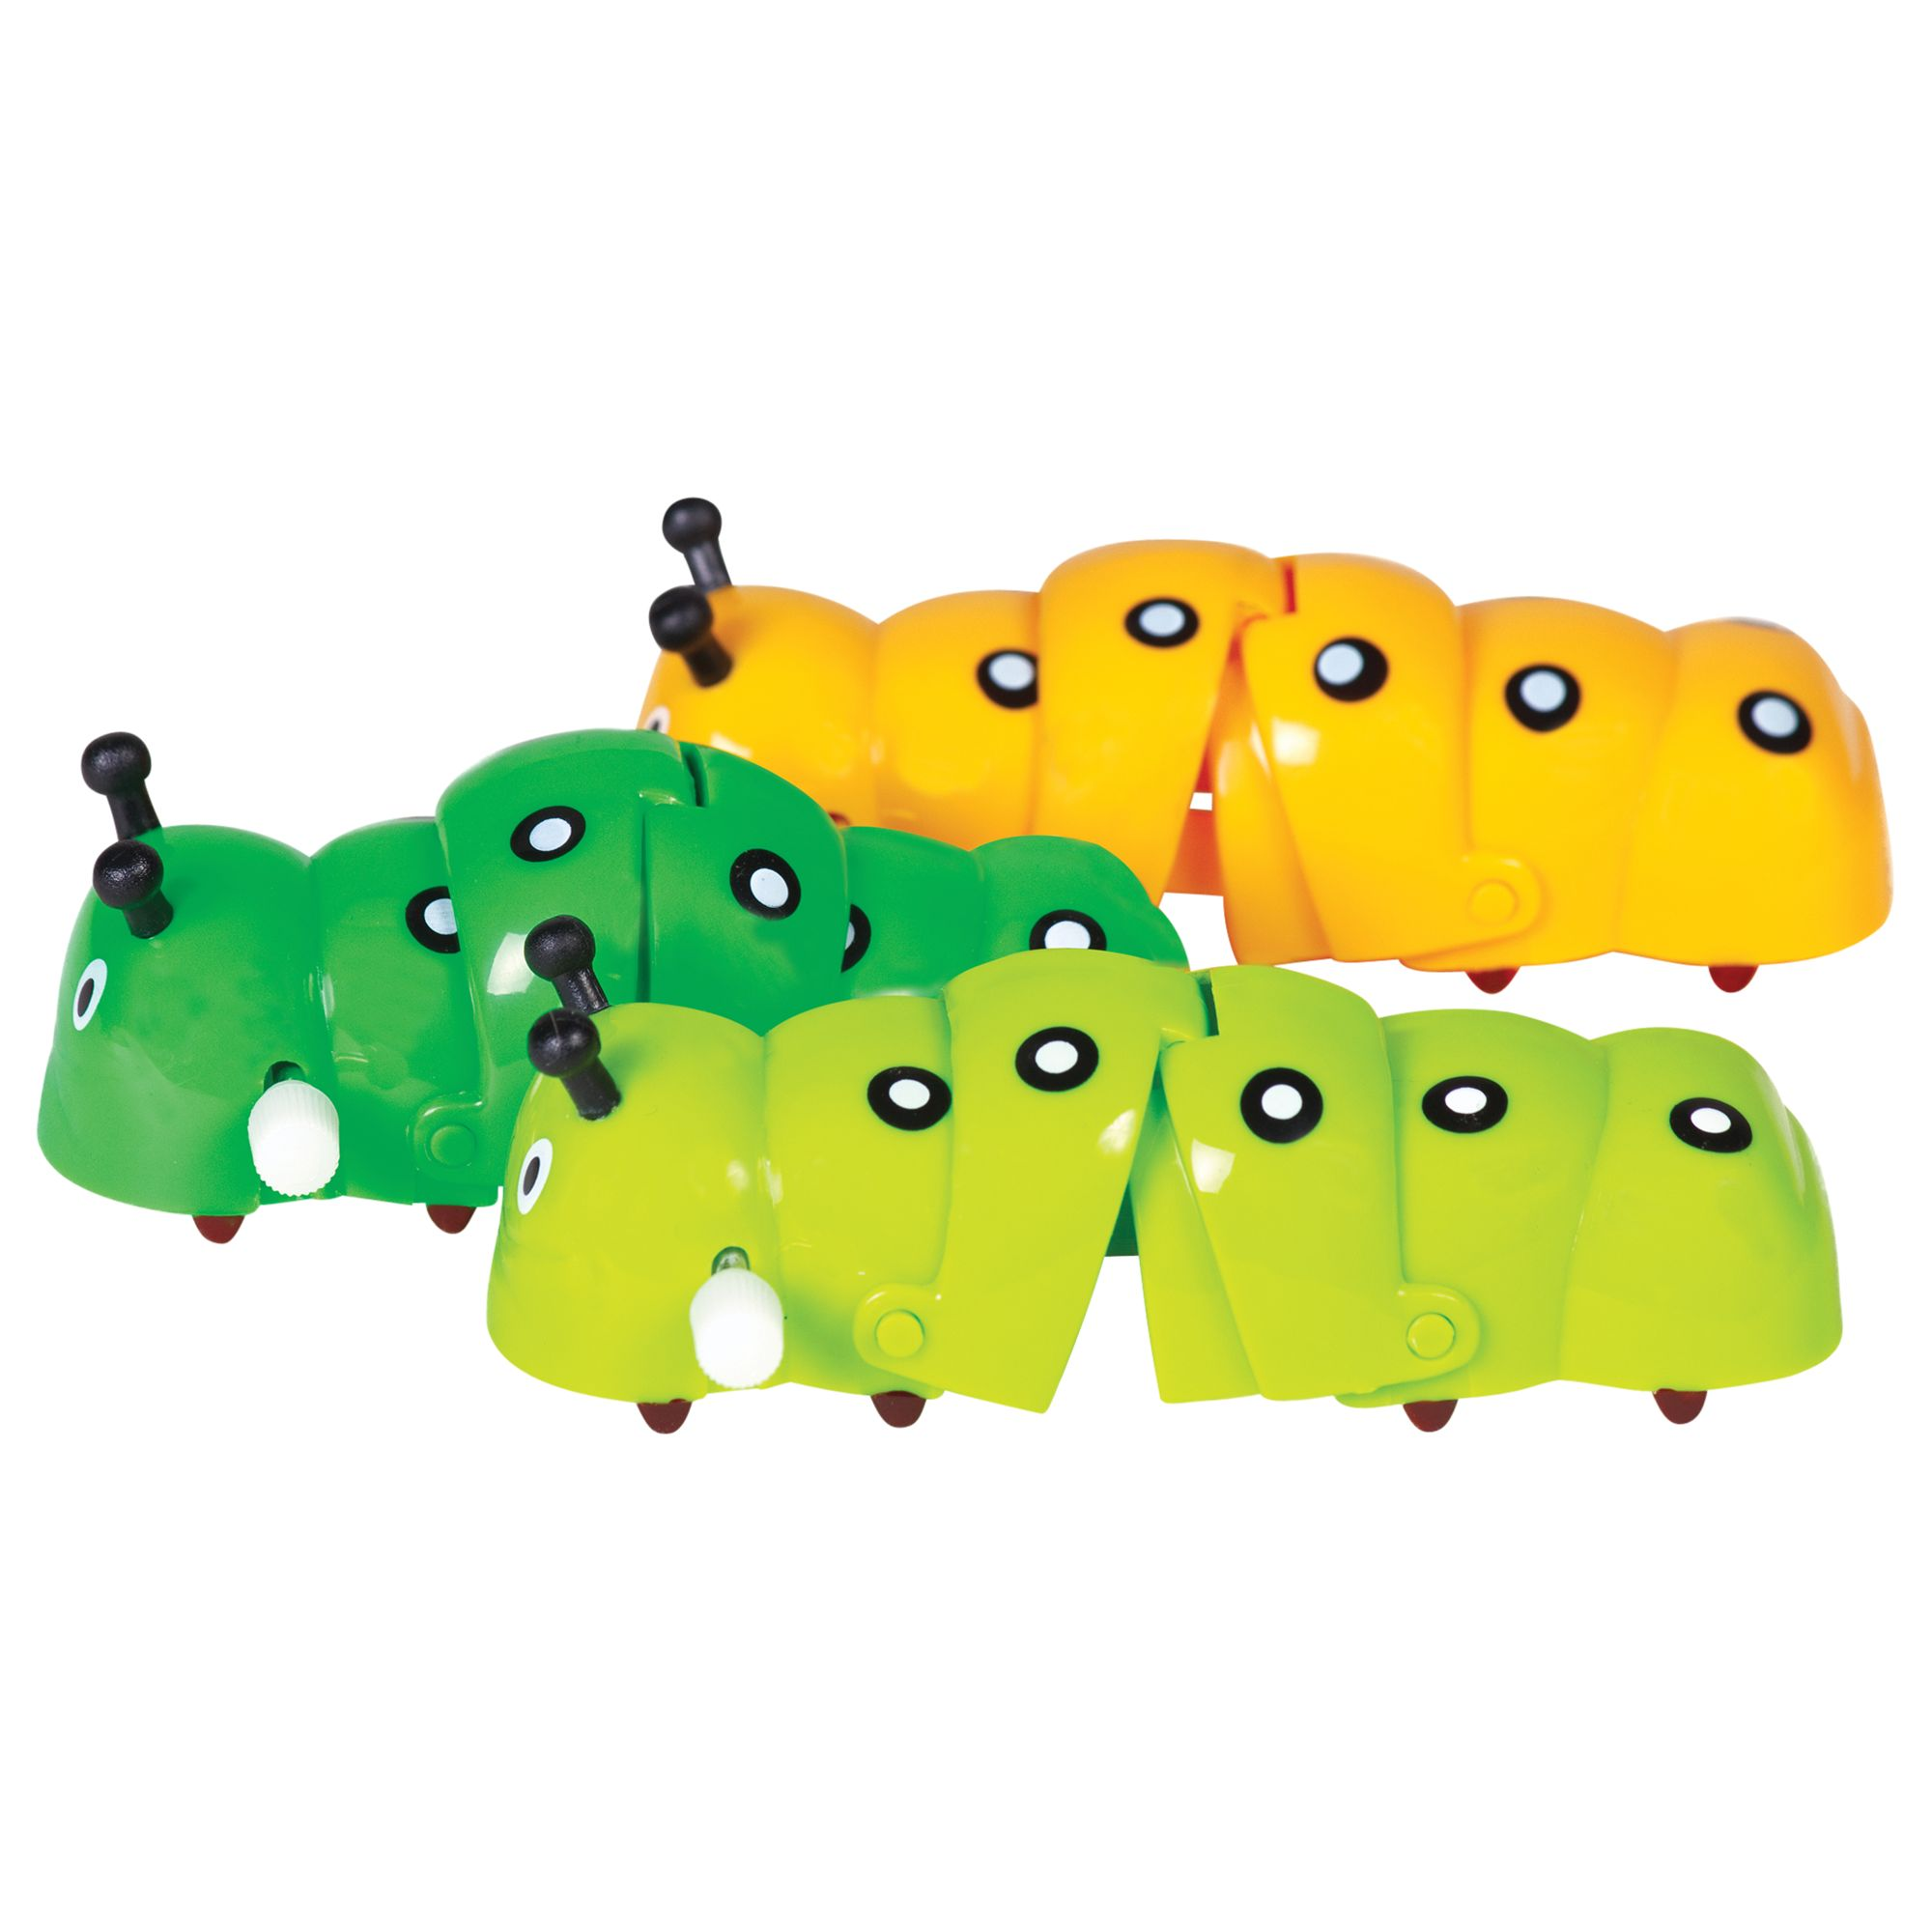 Wind-Up Caterpillar, Assorted